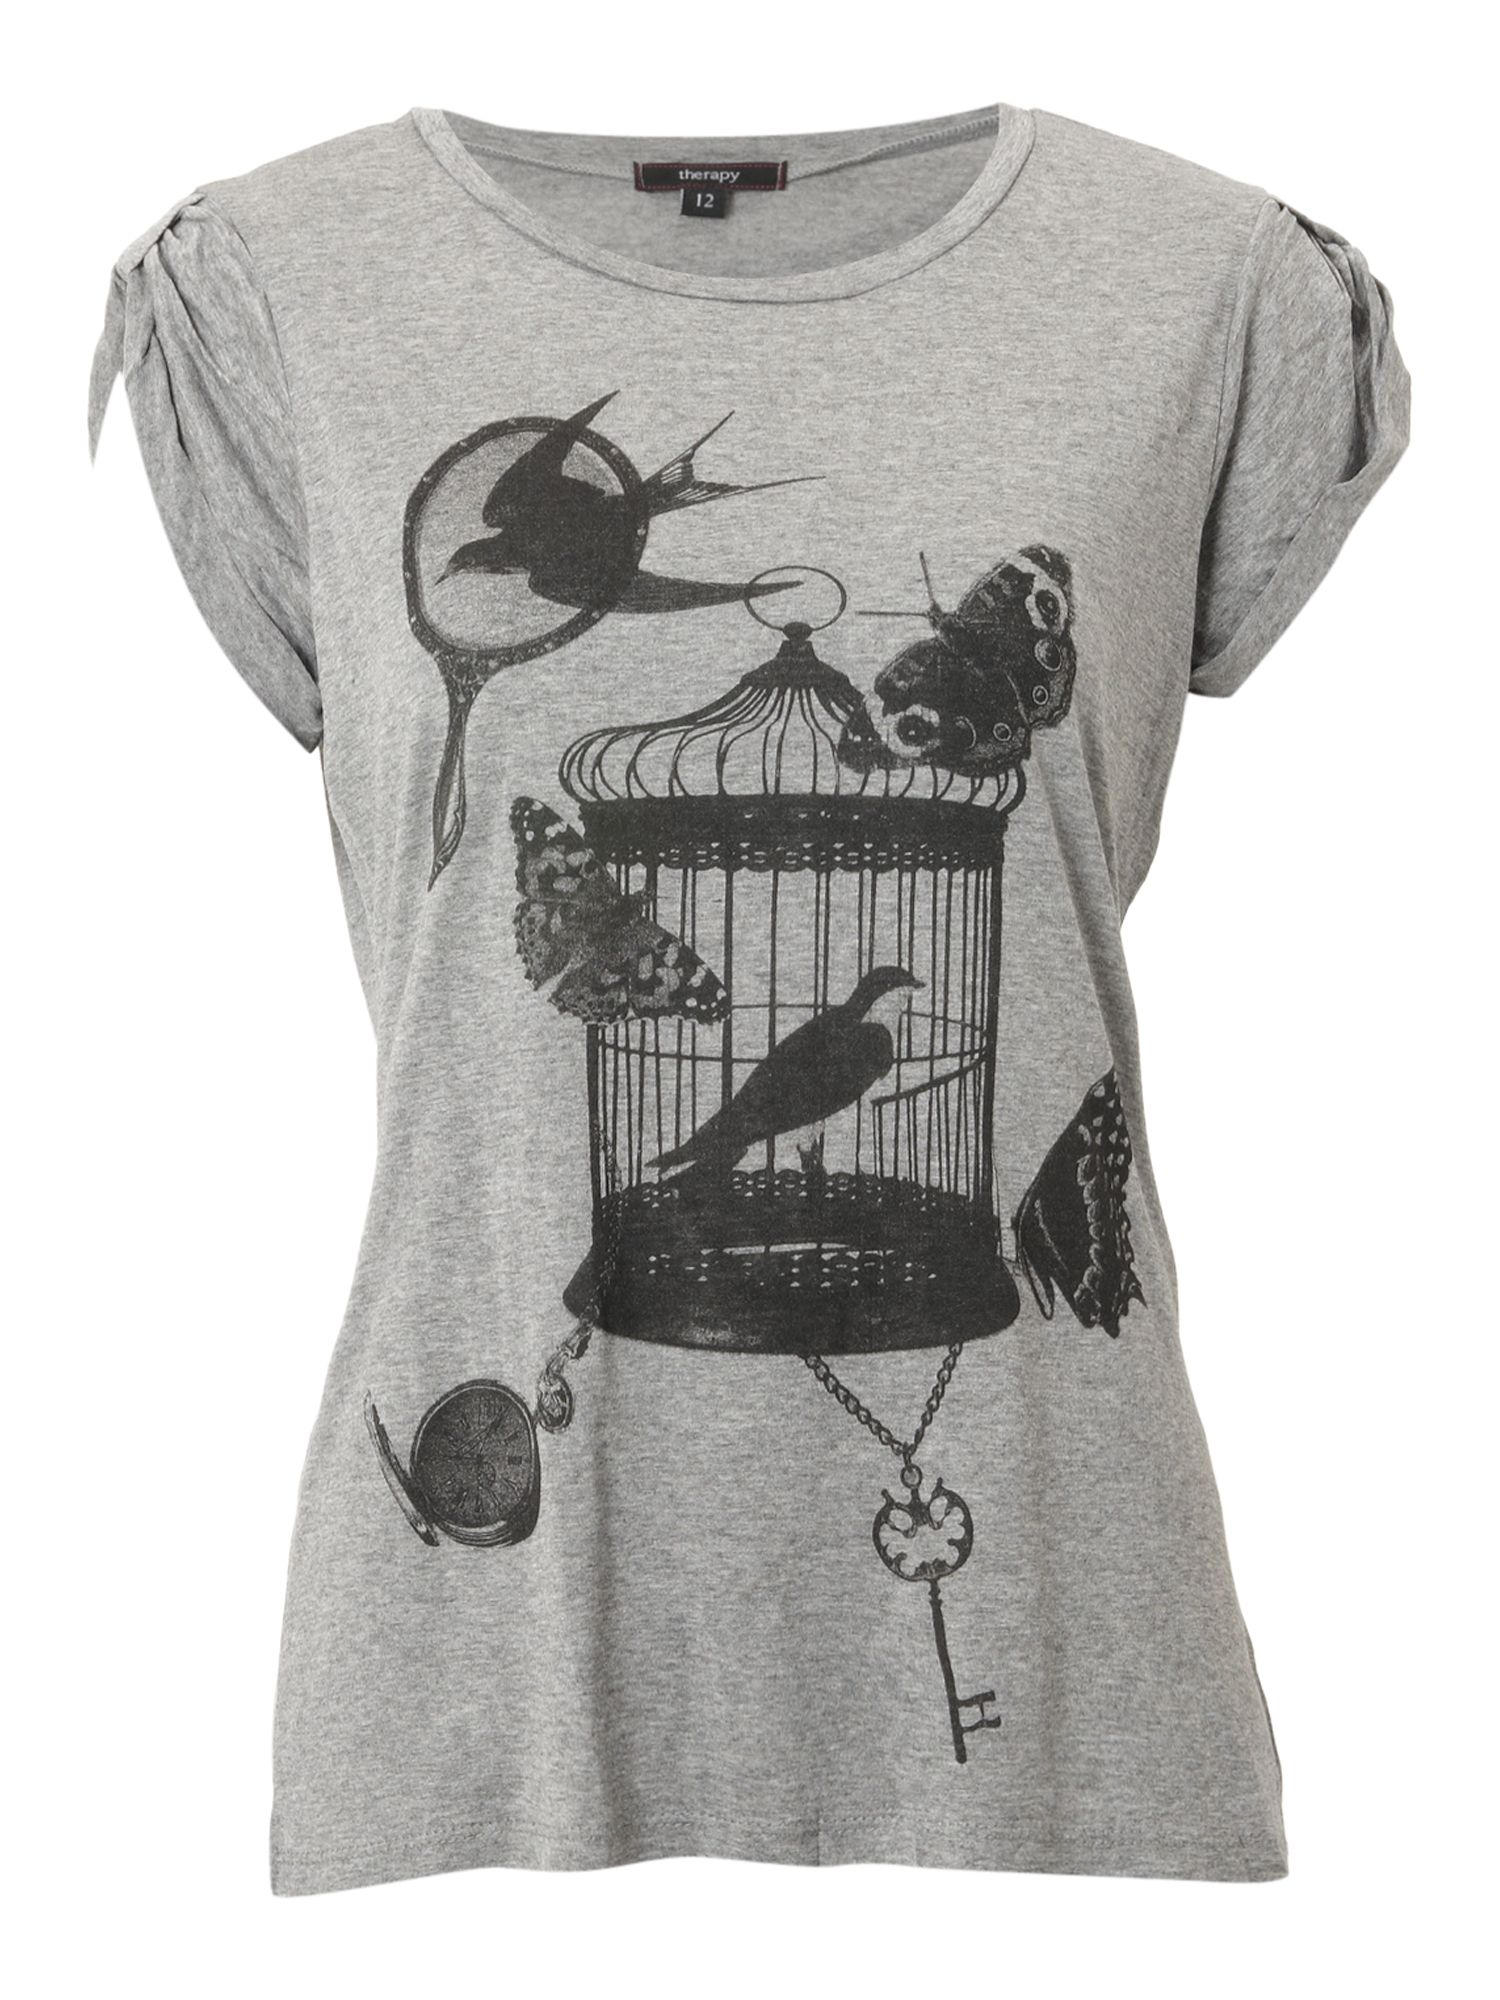 Therapy Bird cage print t-shirt - Grey 6,6,6,6 product image